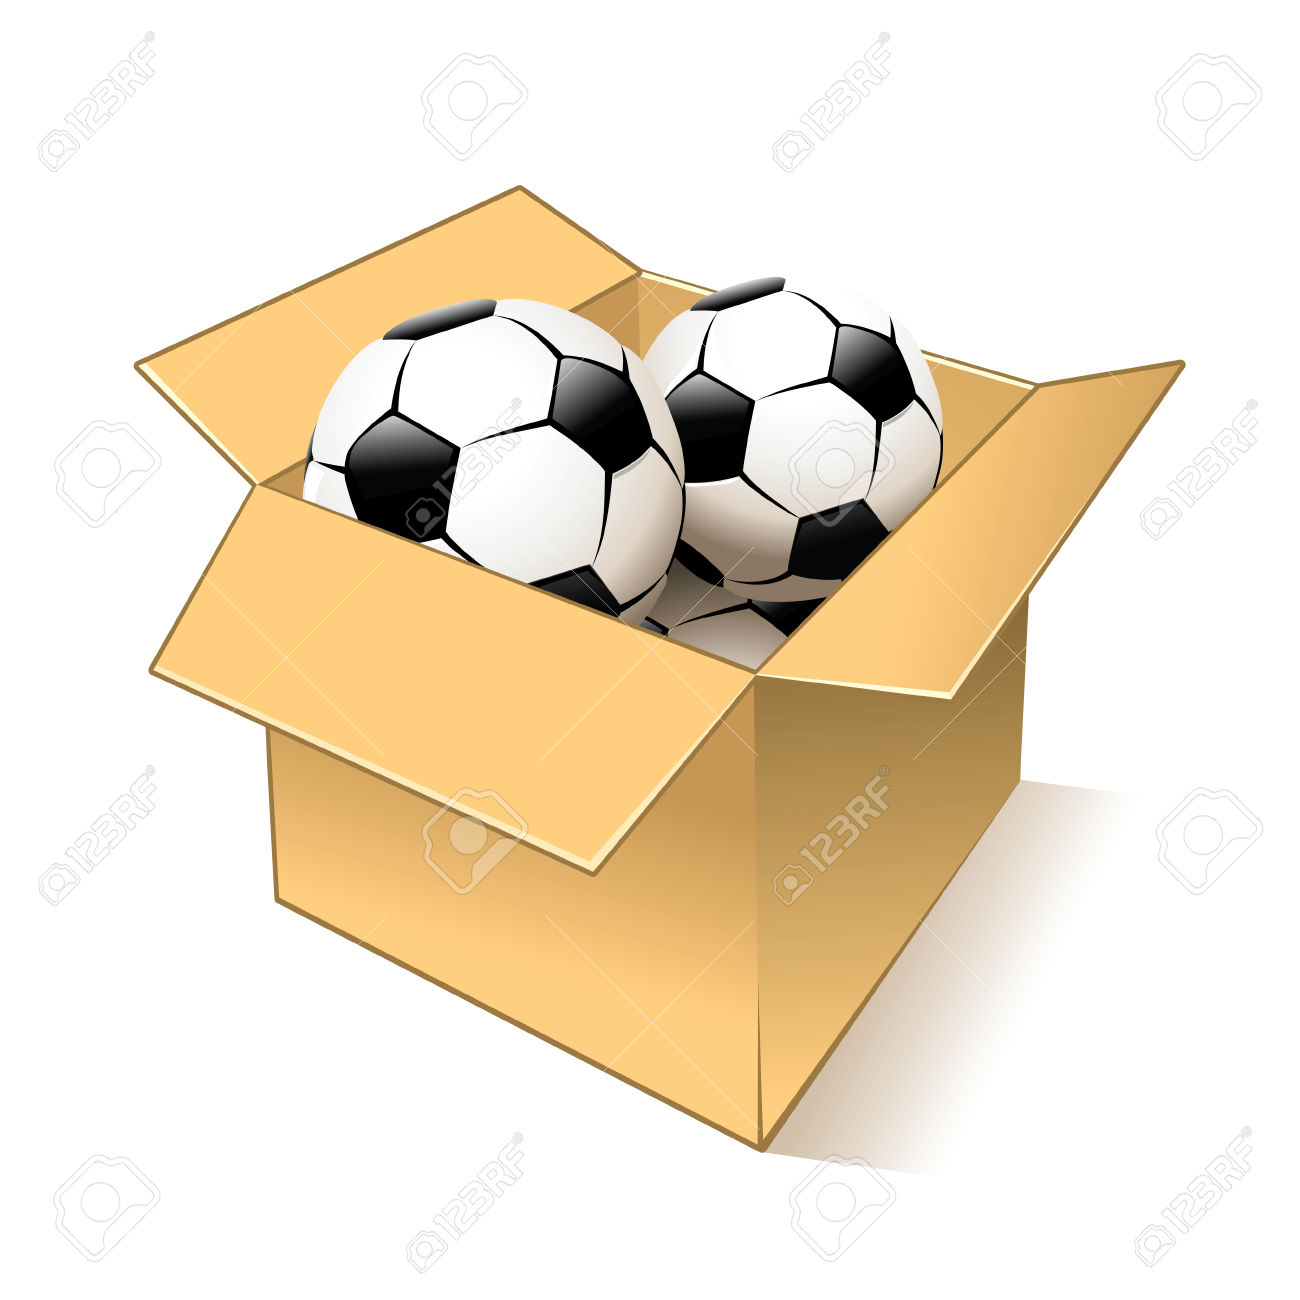 Ball in box clipart royalty free Ball in the box clipart 9 » Clipart Station royalty free